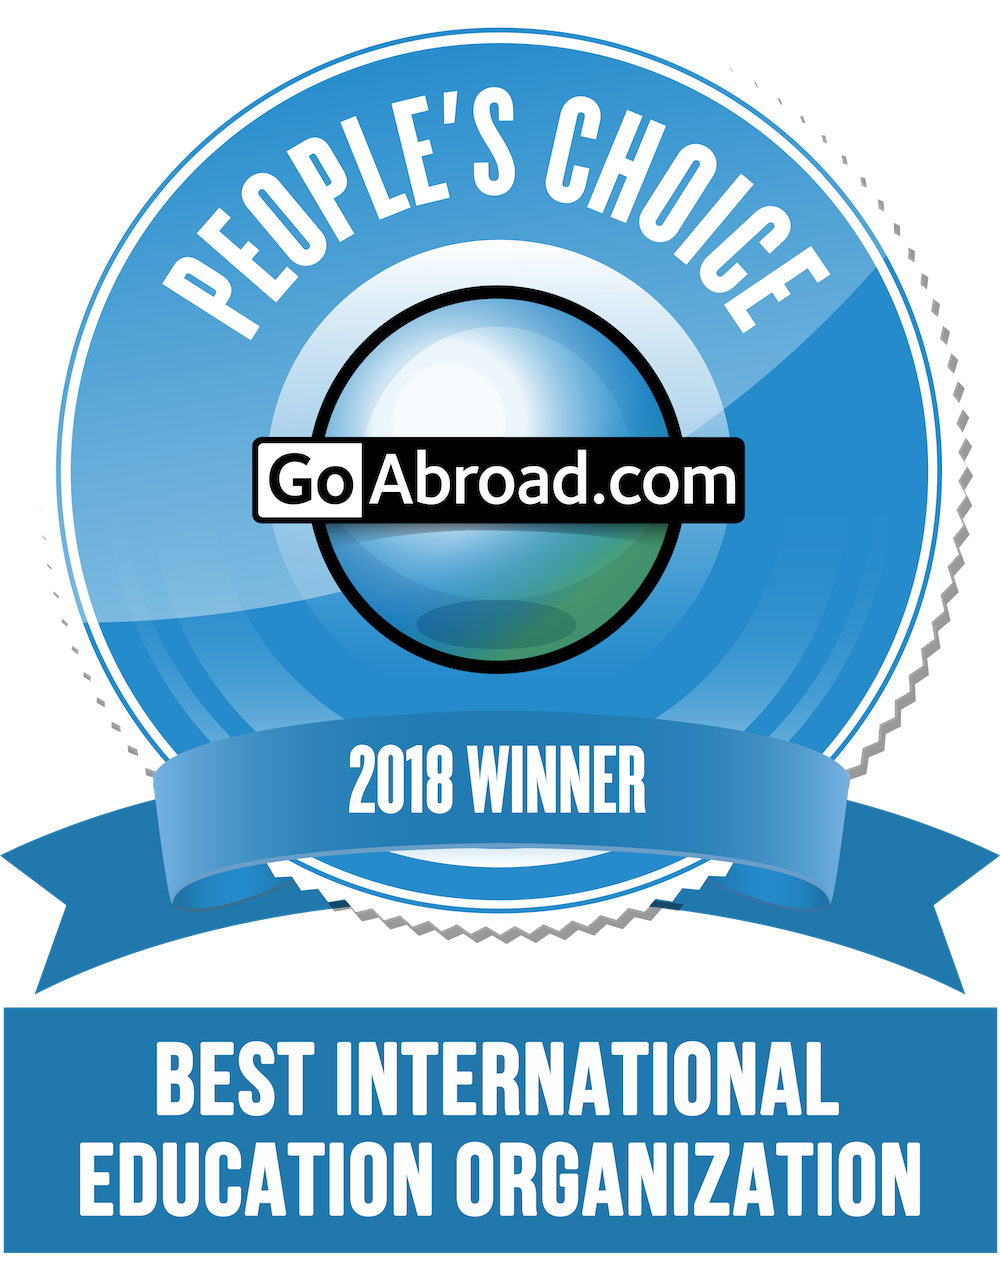 Winner of Goabroad People's choice Award 2018